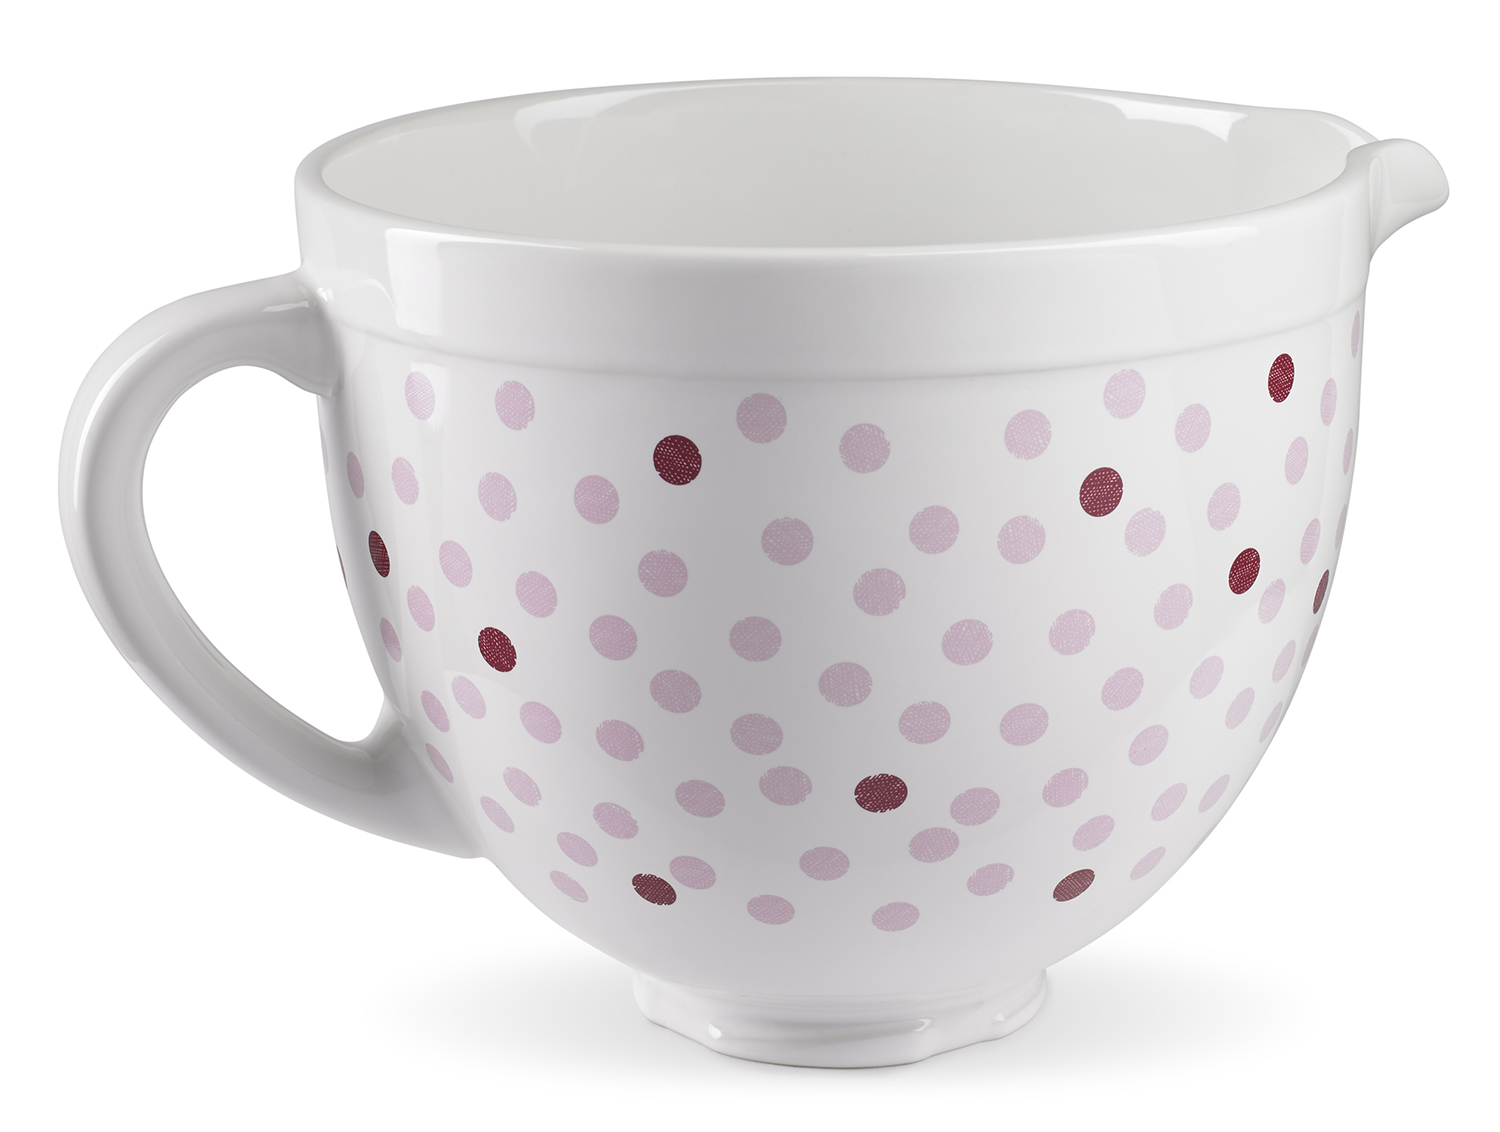 KitchenAid® Pink Polka Dot Ceramic Bowl